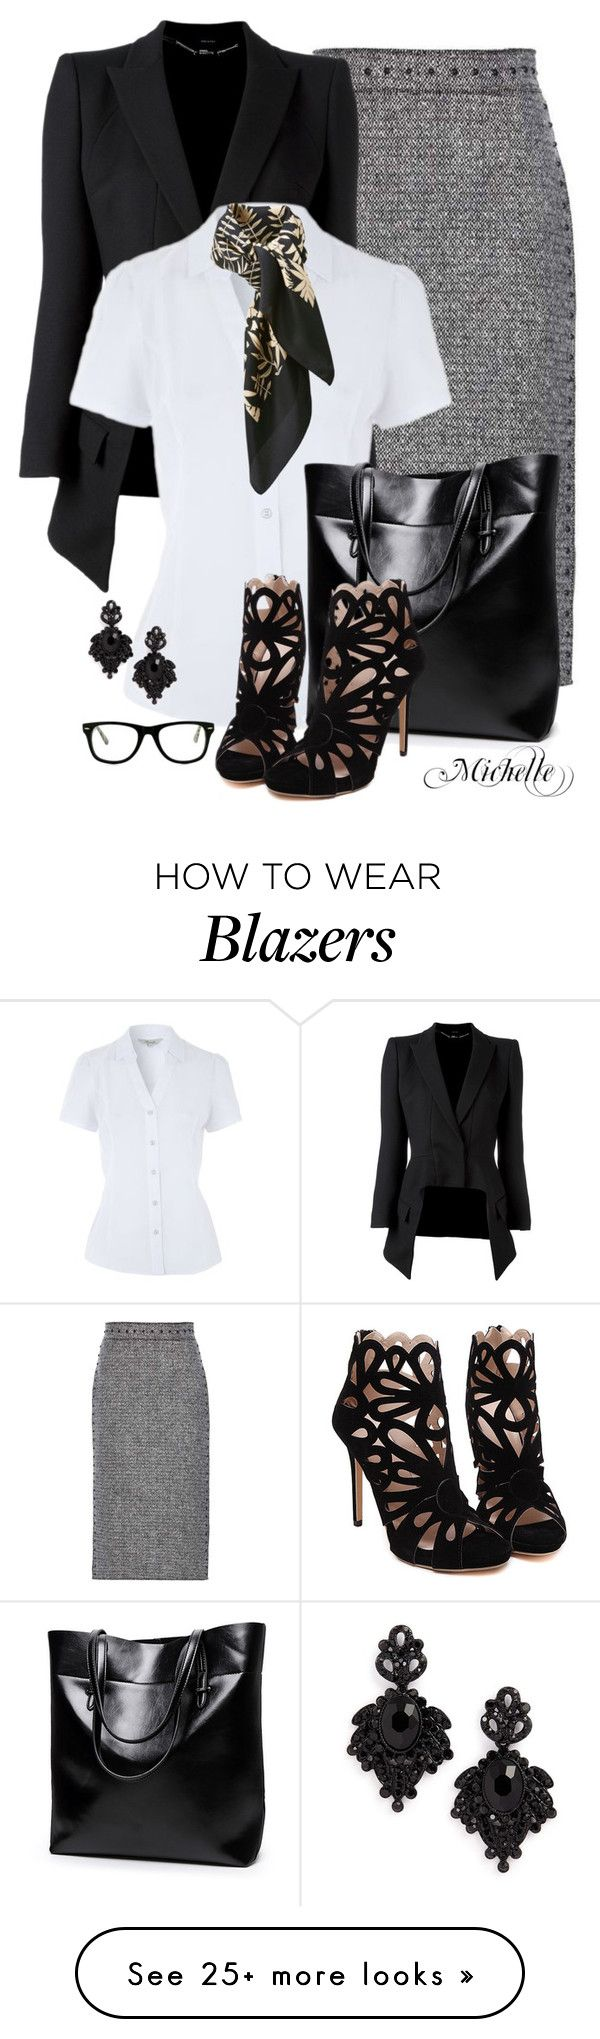 """Pencil Me In"" by michellesherrill on Polyvore featuring Valentino, Alexander McQueen, Tasha, Uniqlo and Muse"